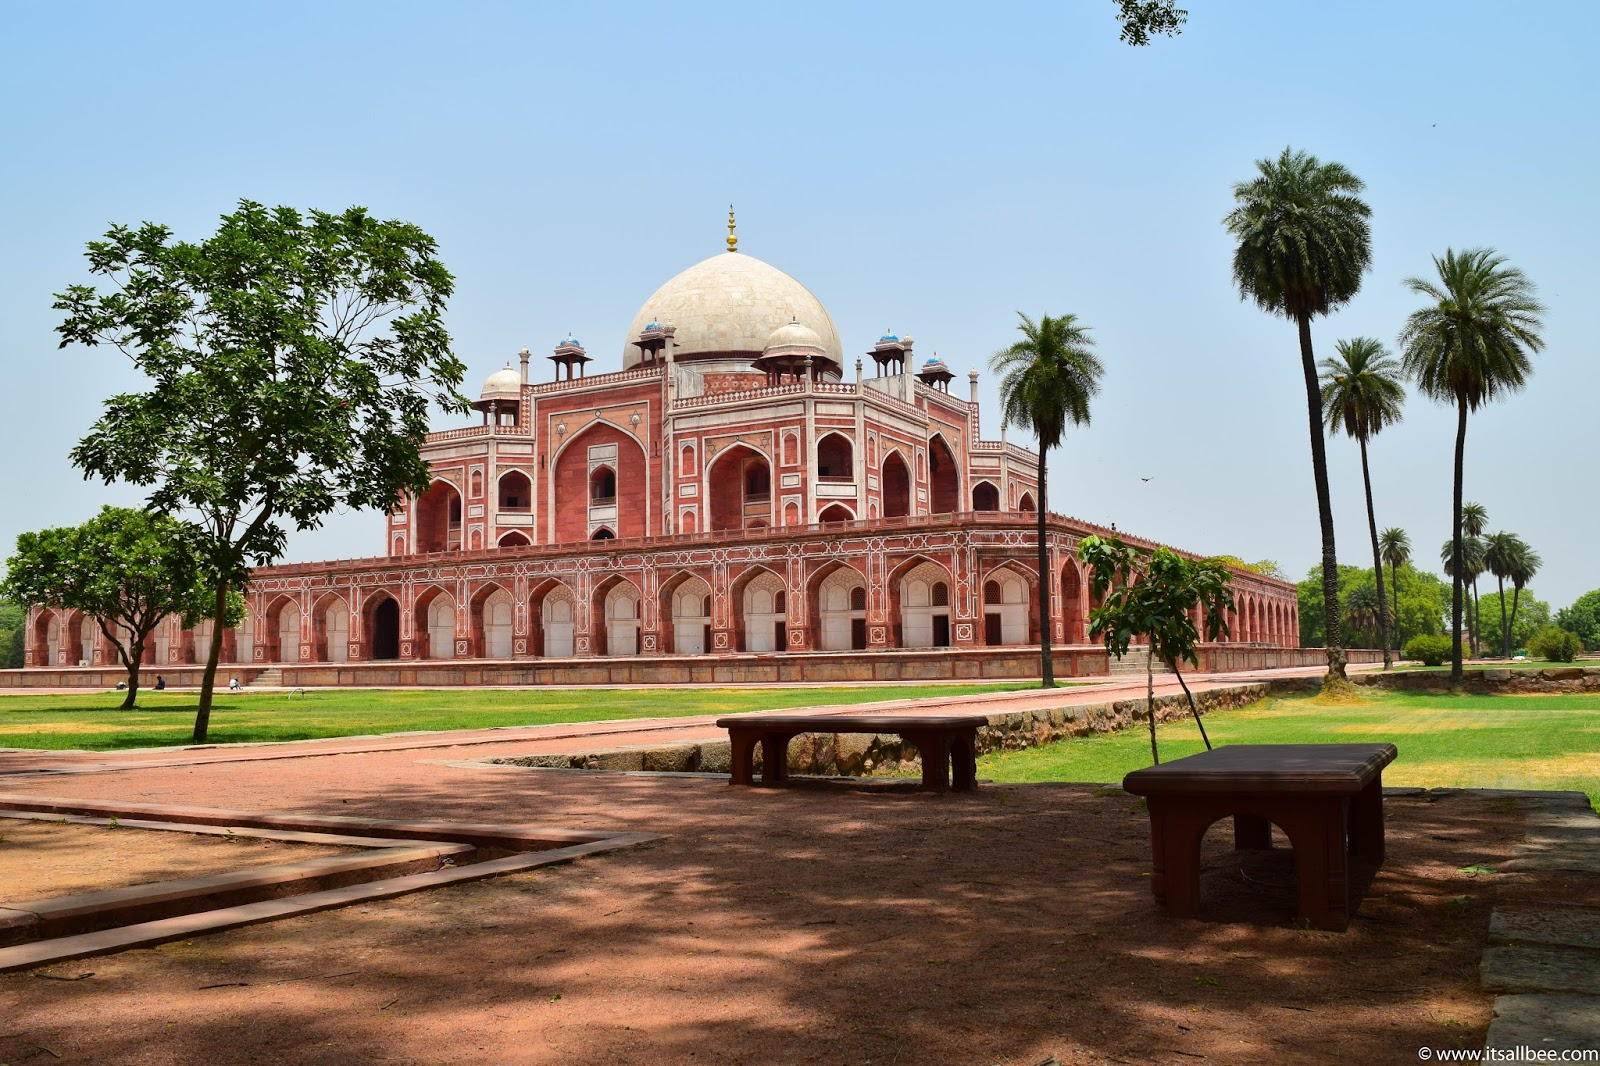 Humayun's Tomb In New Delhi - India. Photo by Bianca -www.itsallbee.com